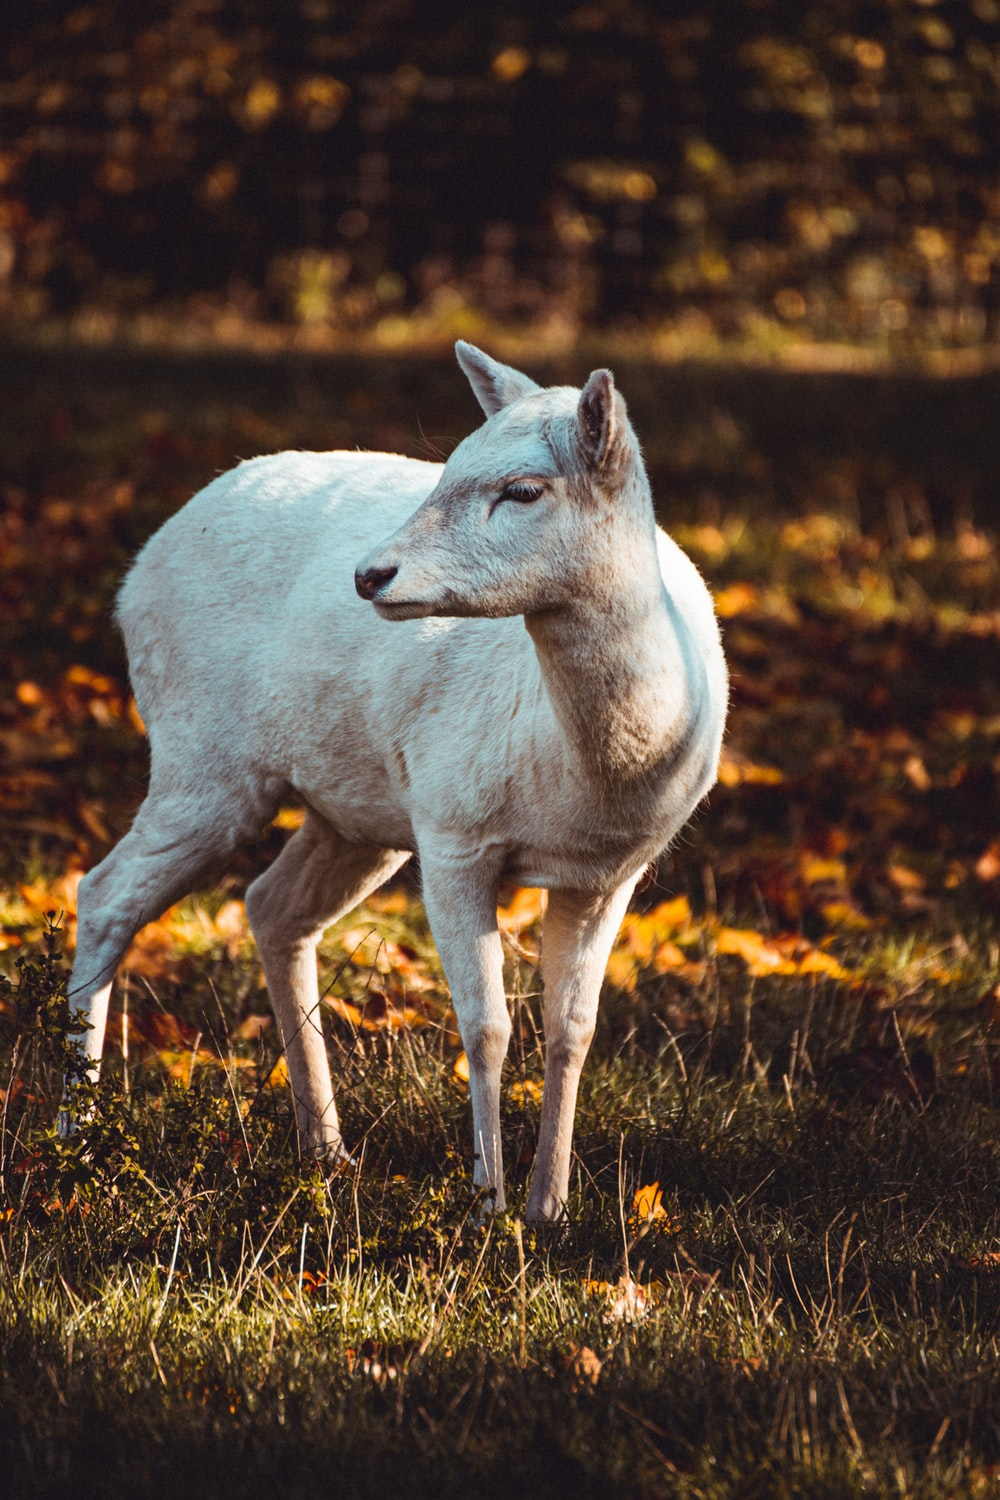 white goat on the grass field photograph